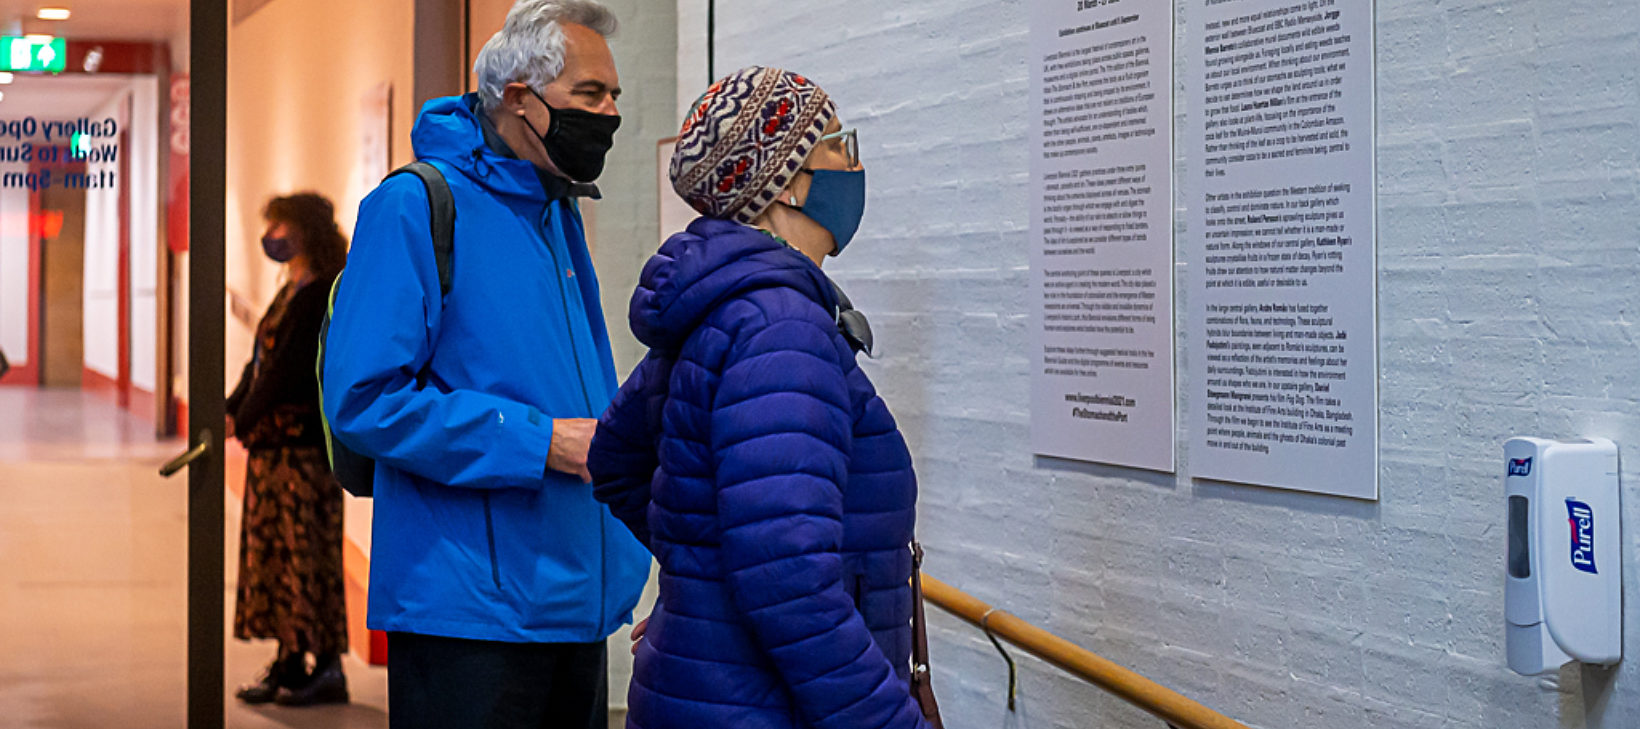 Two customers wearing masks reading Biennial introduction